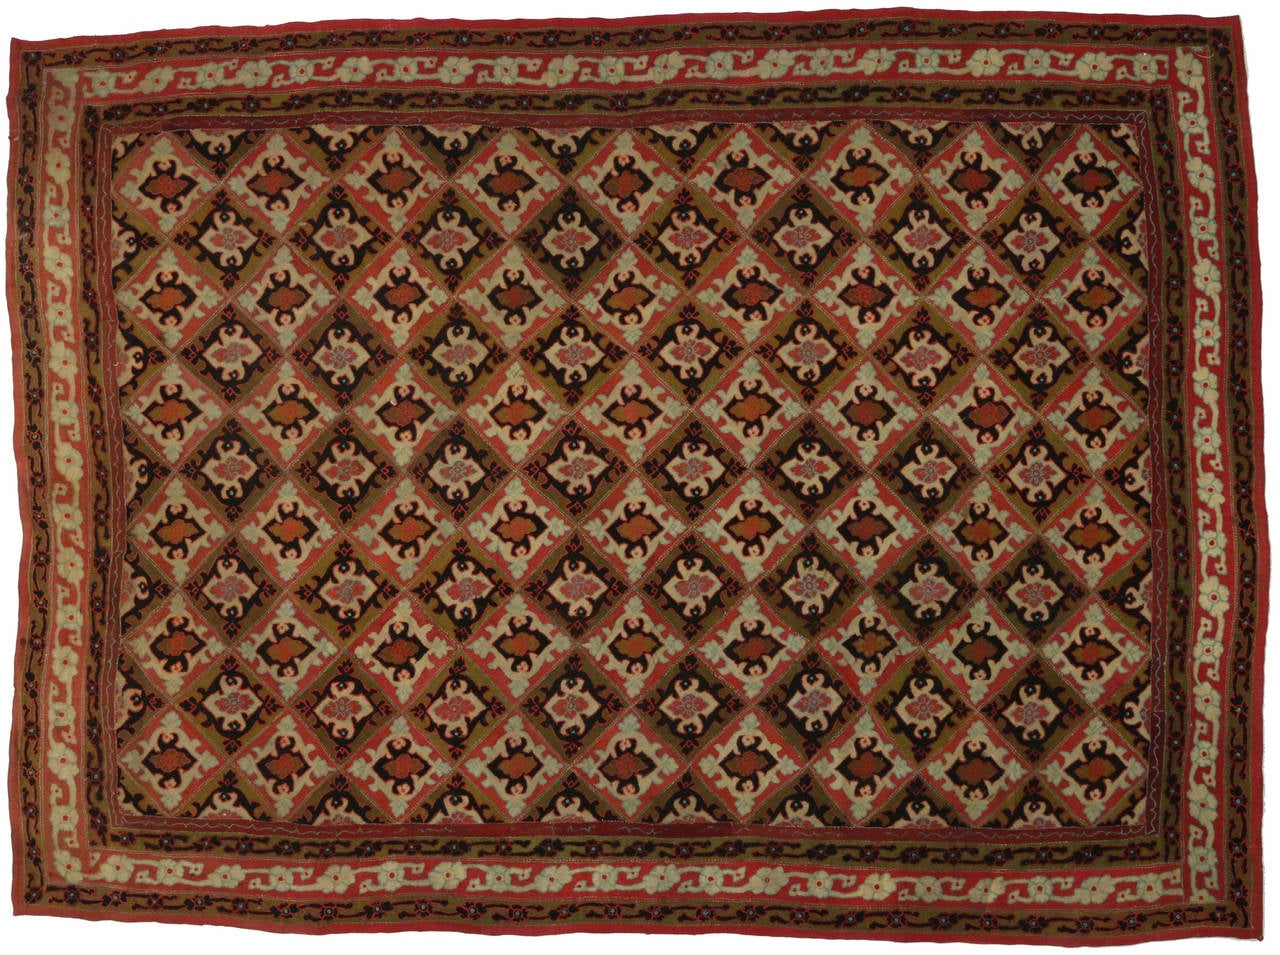 Hand-Woven Antique Afghanistan Area Rug with Jacobean Style, Antique Wool Felted Rug For Sale